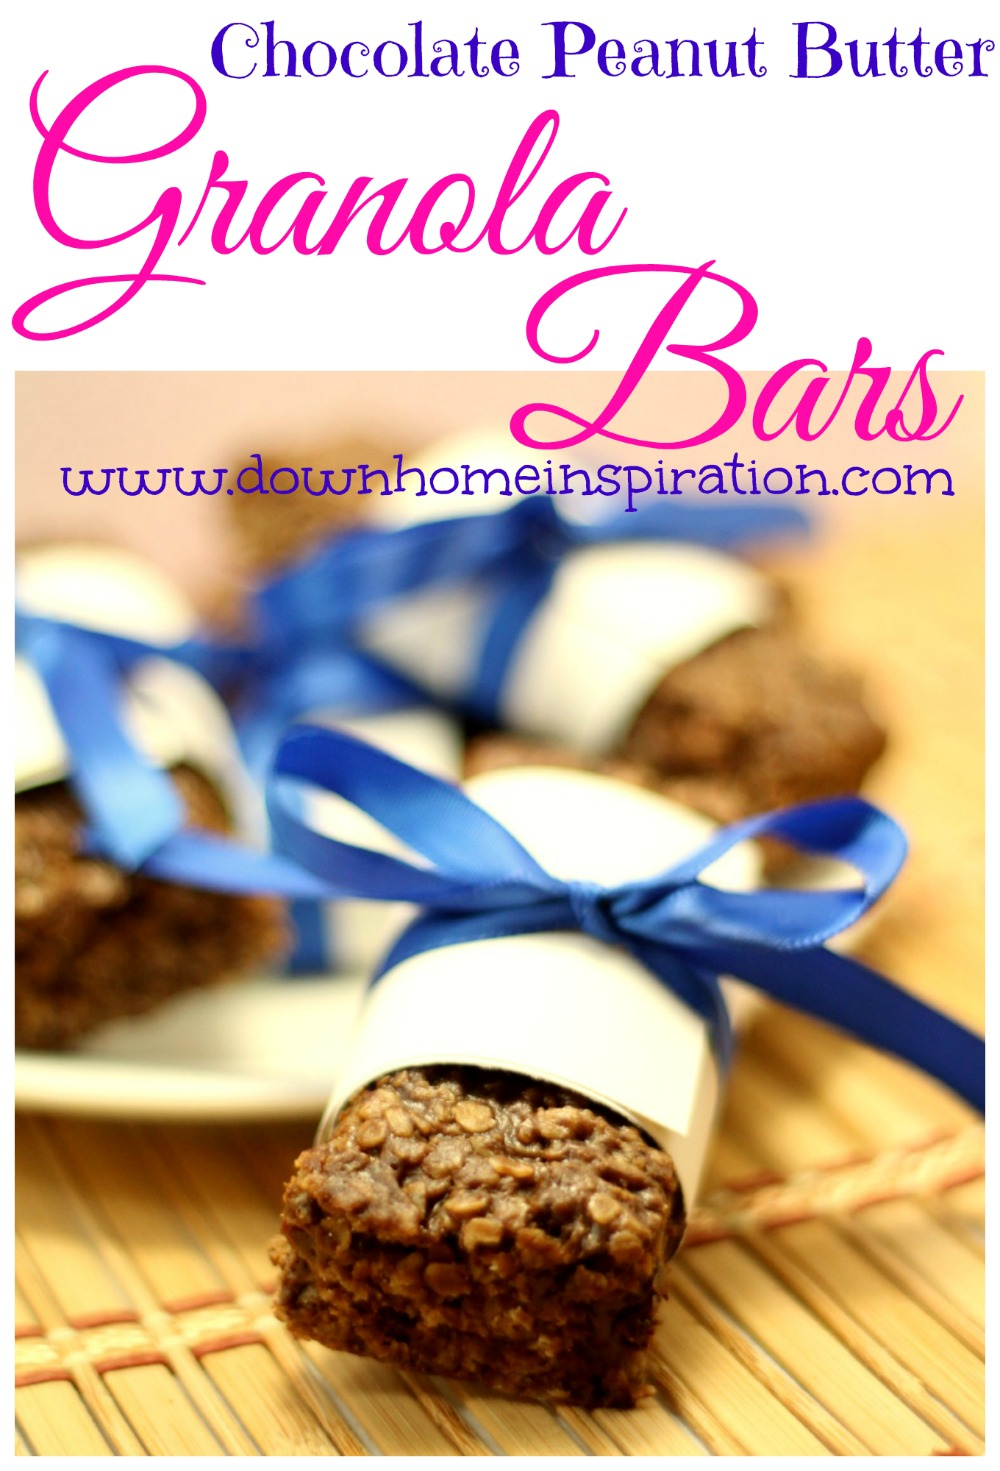 Chocolate Peanut Butter Granola Bars - Down Home Inspiration